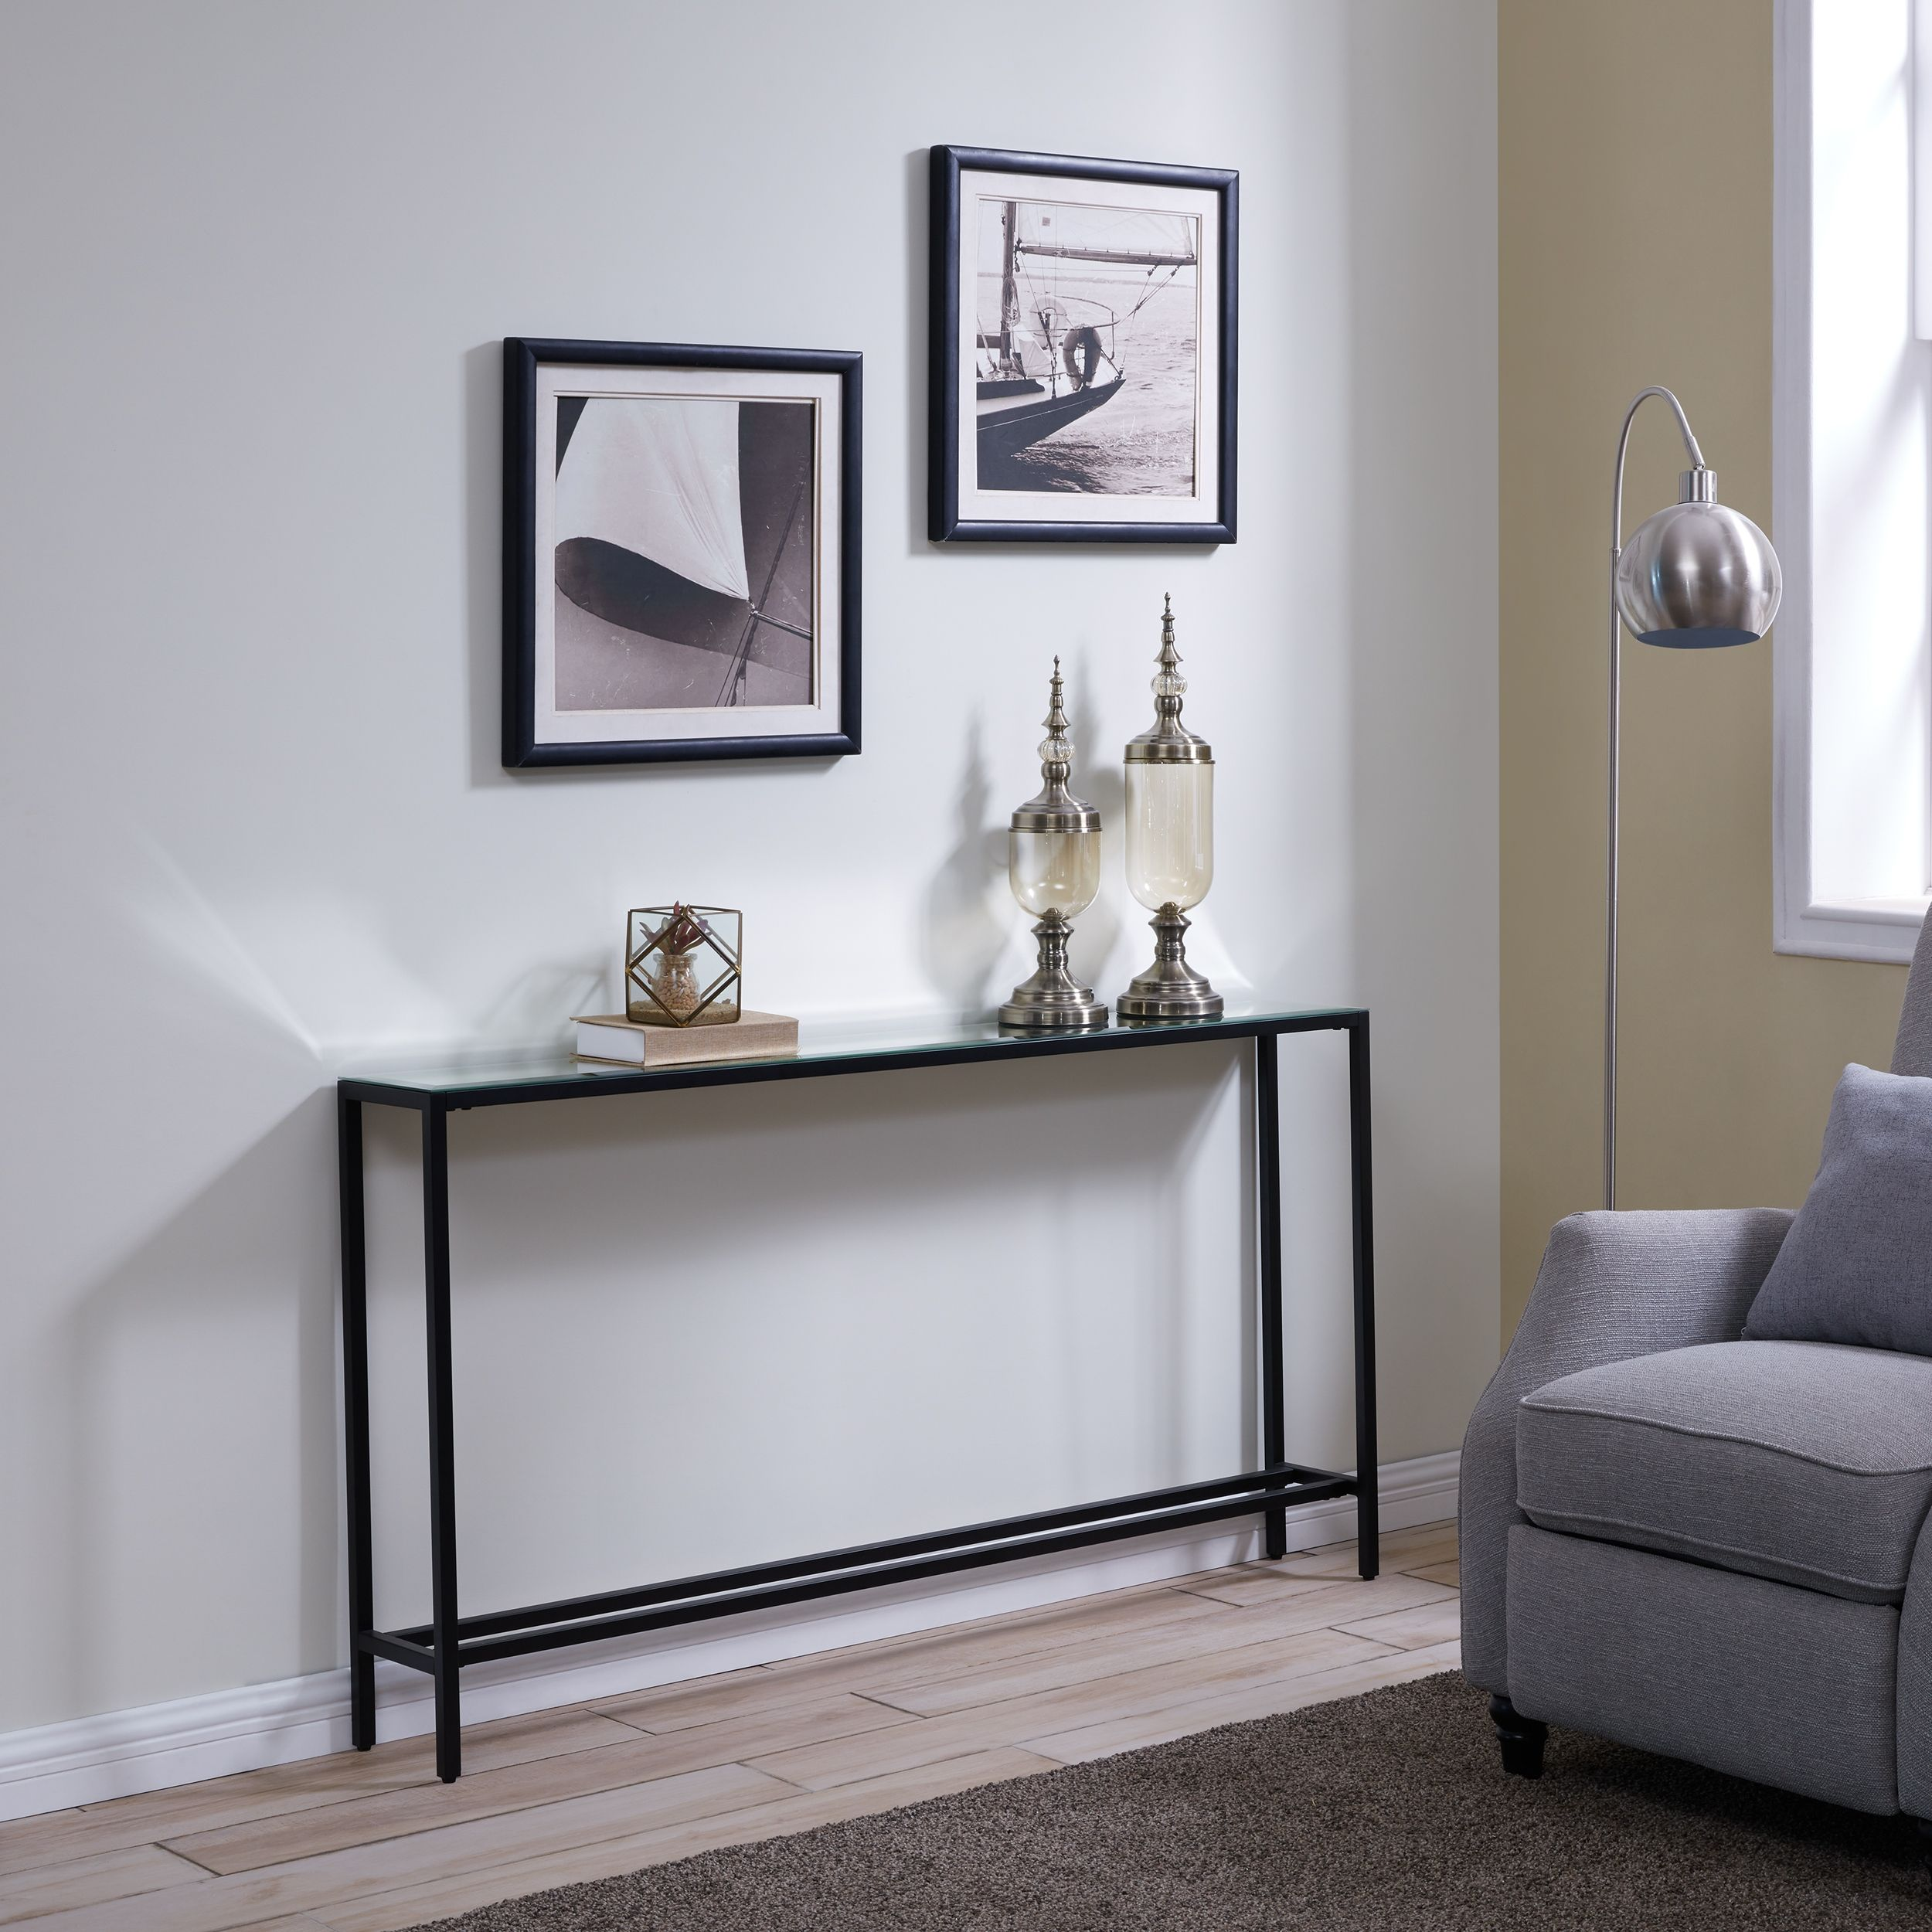 Blucat Narrow Long Console Table With Mirrored Top Gunmetal Gray Ashley Furniture Homestore Long Console Narrow Console Table Console Table